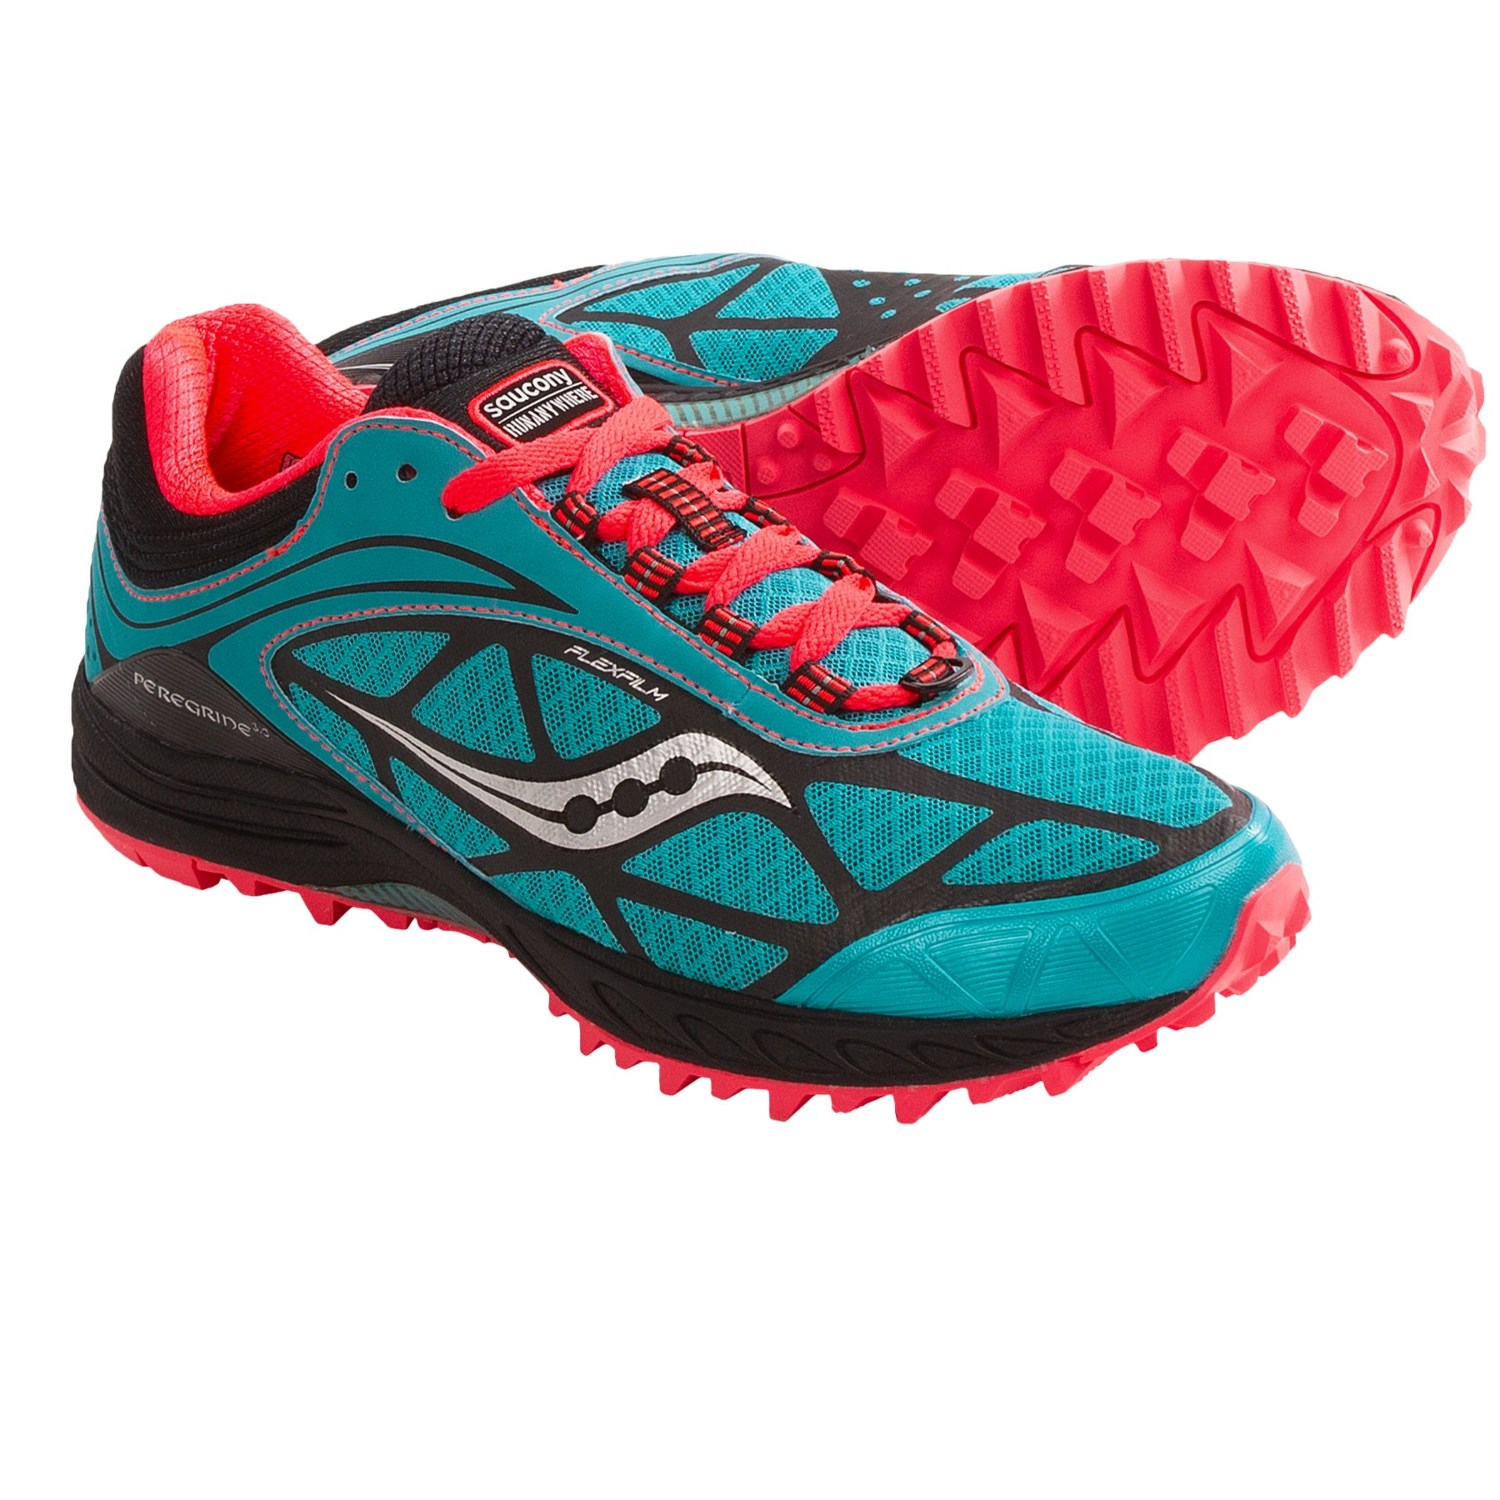 Saucony ProGrid Peregrine 3 Trail Running Shoes (For Women) in Tea